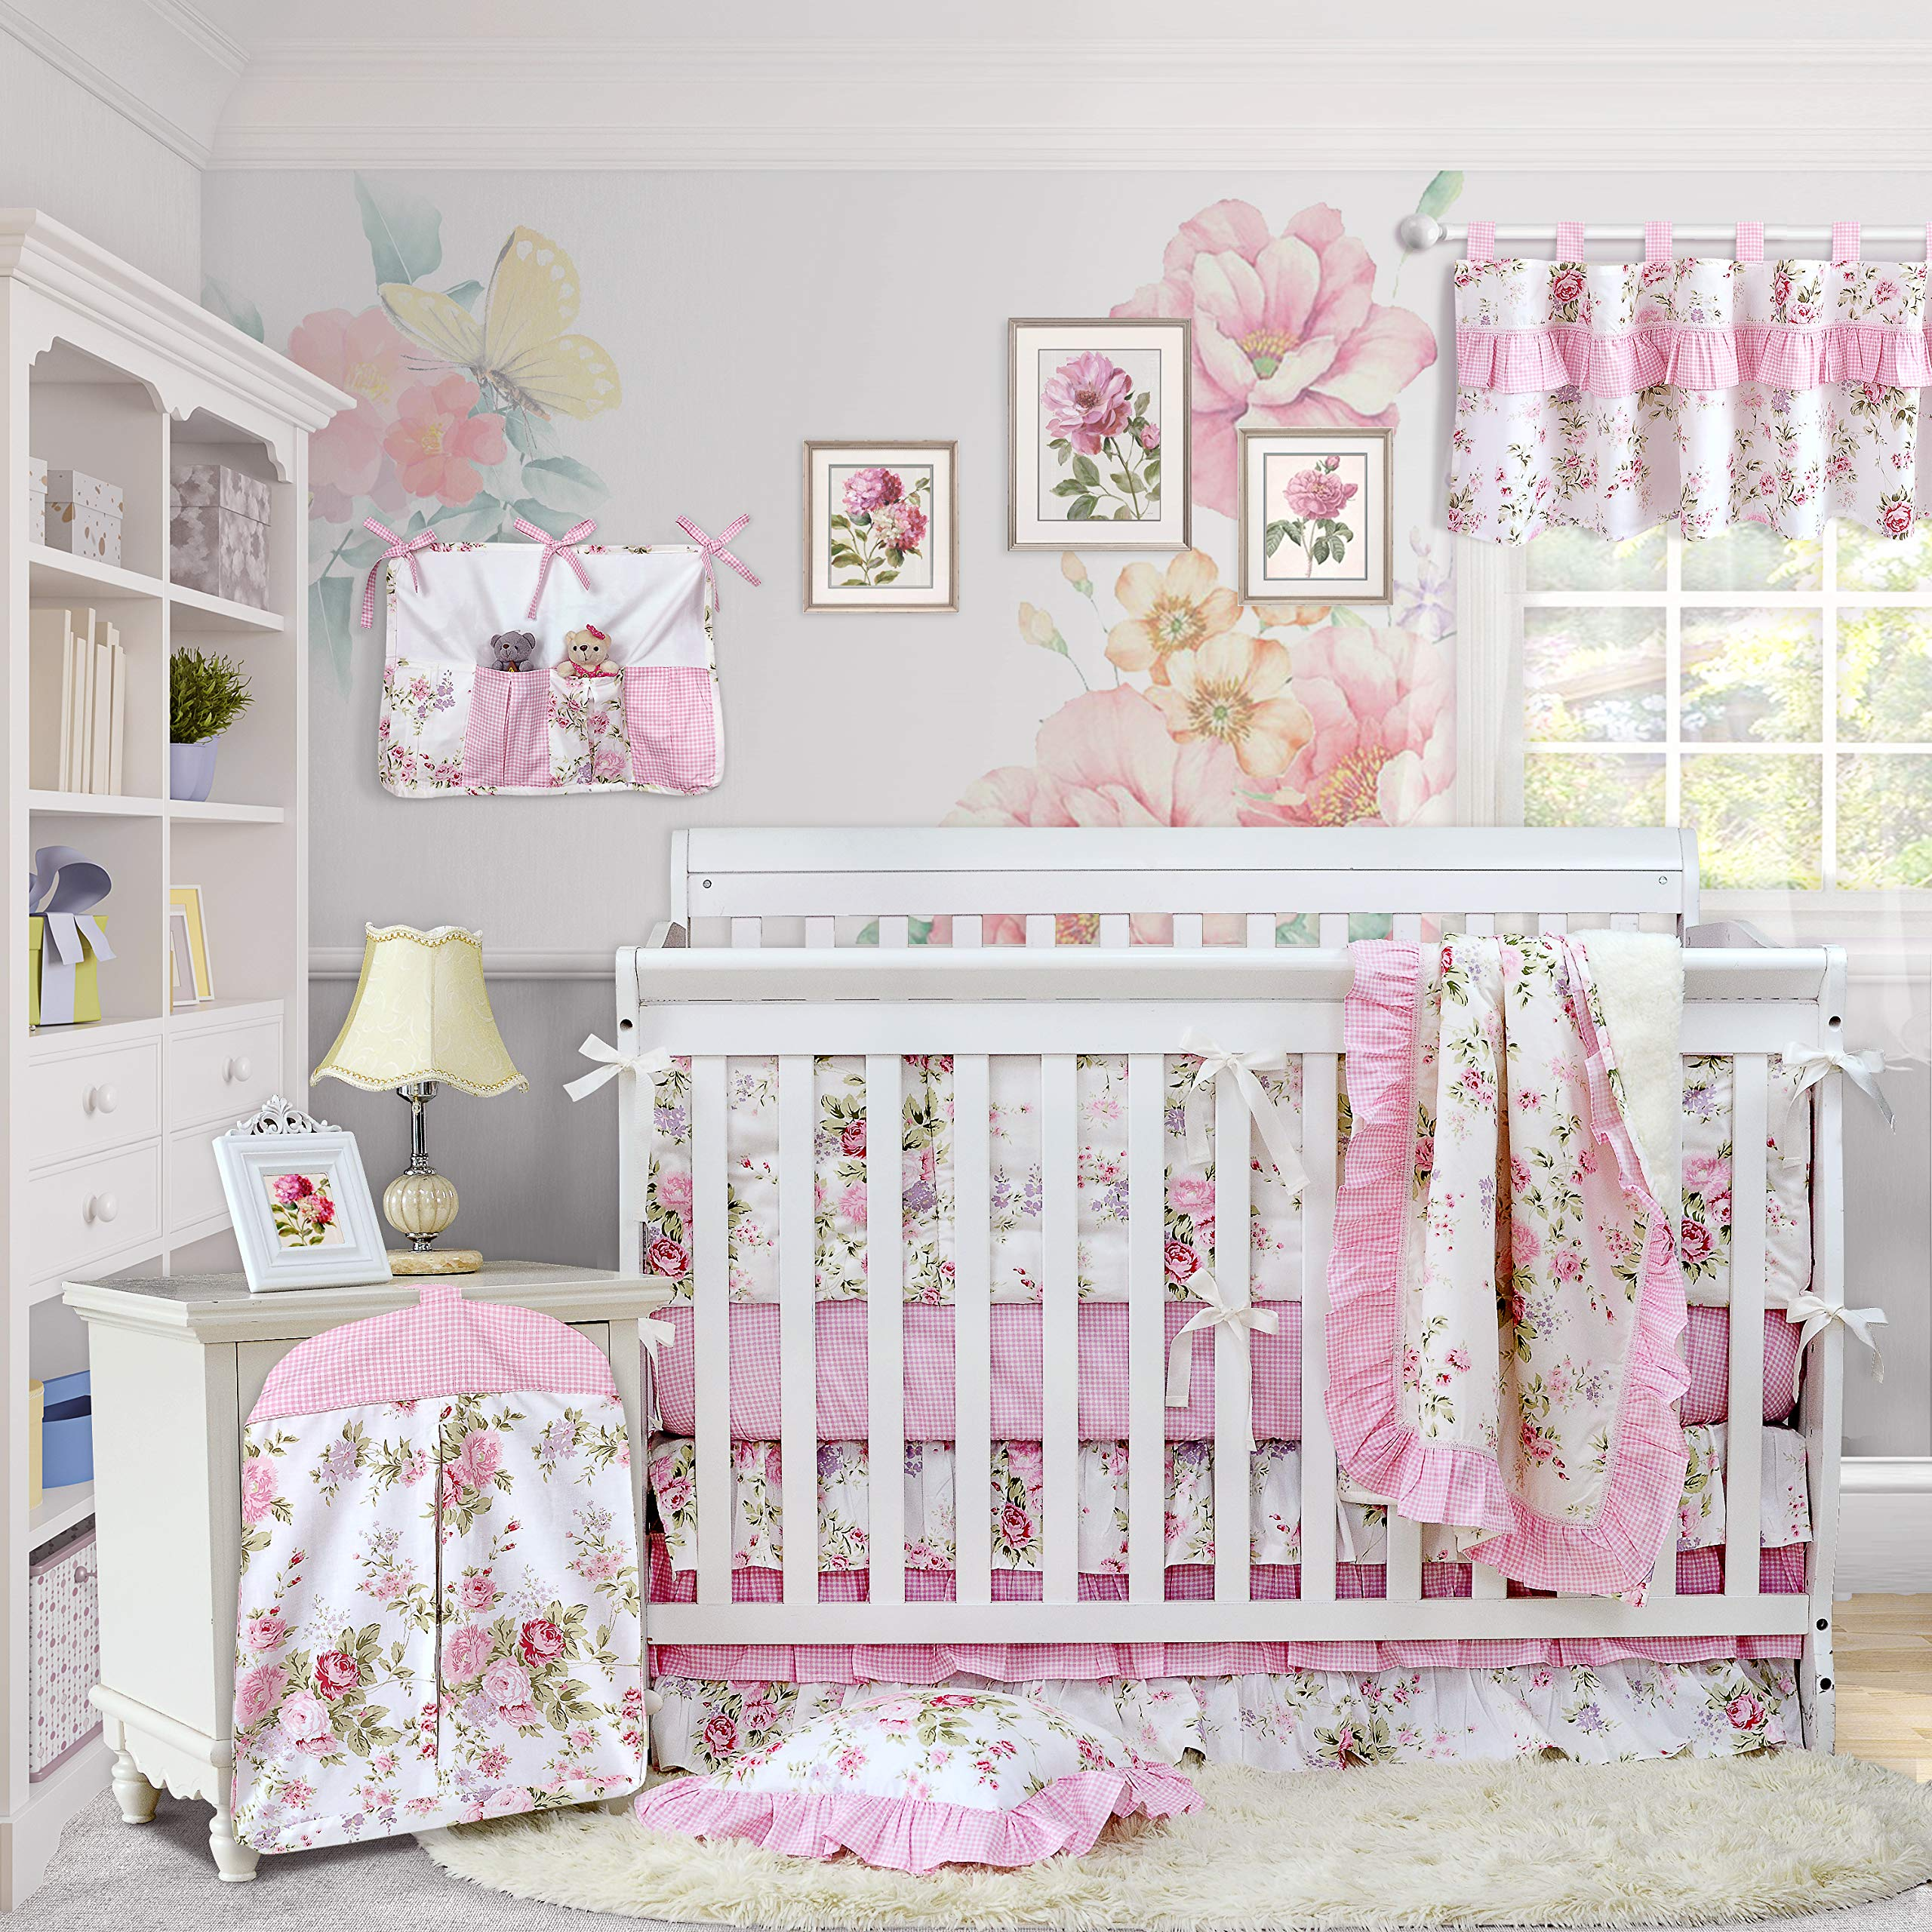 Brandream Baby Girls Crib Bedding Sets with Bumpers Blossom Blush Pink Watercolor Floral Nursery Baby Bedding Crib Sets, 11pieces by Brandream